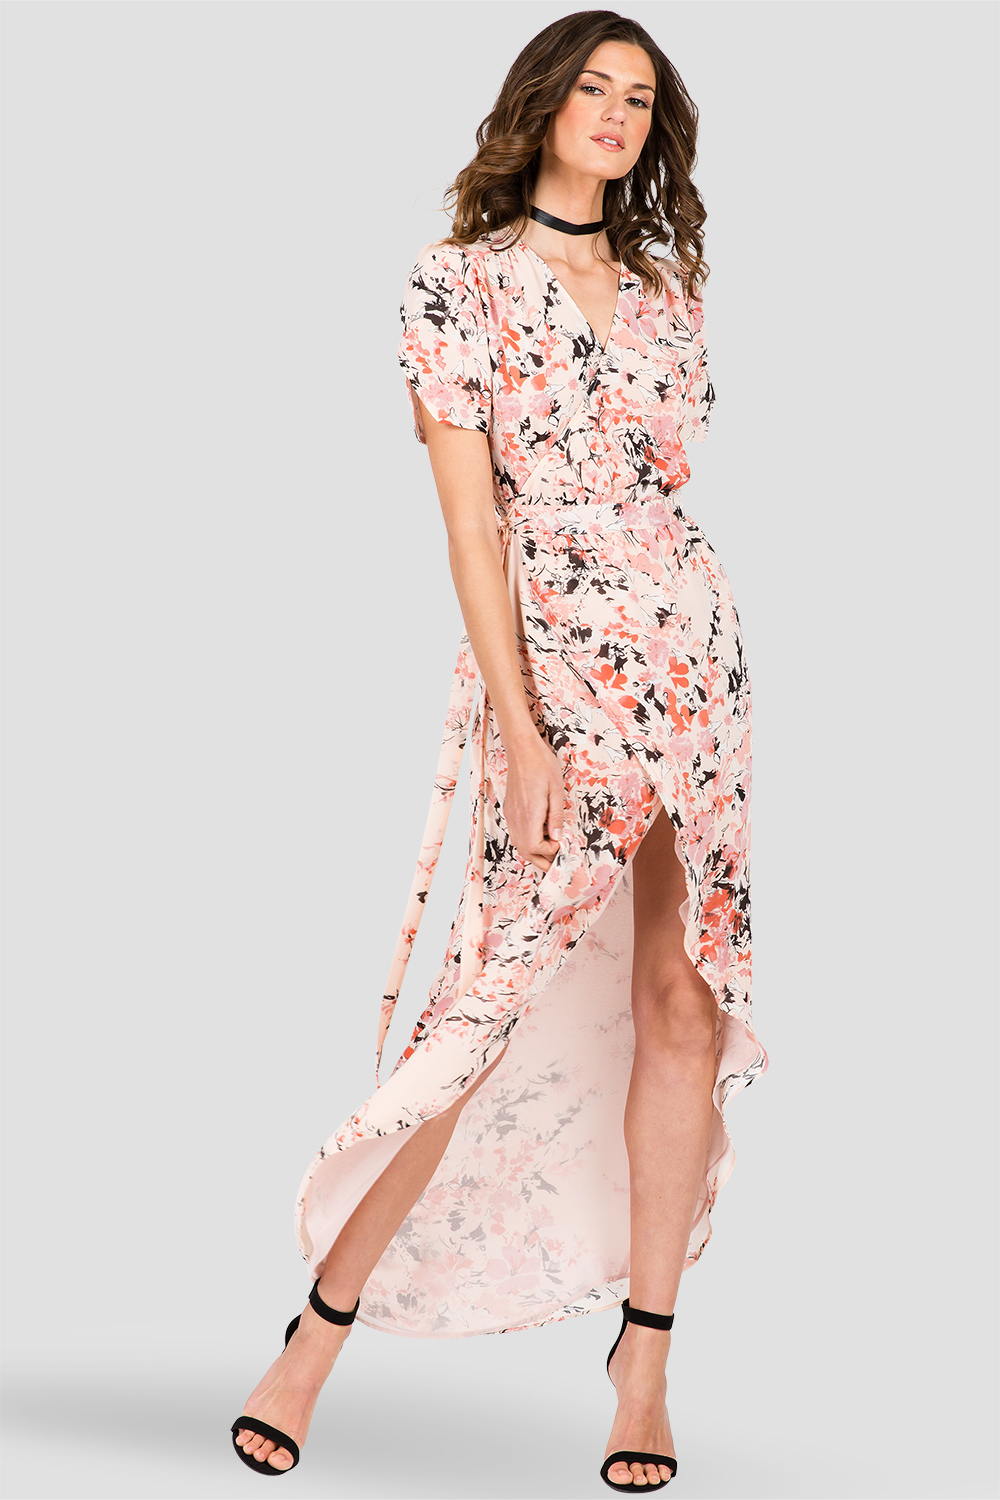 Women's Peach & Pink Floral Print V-Neck Maxi Dress